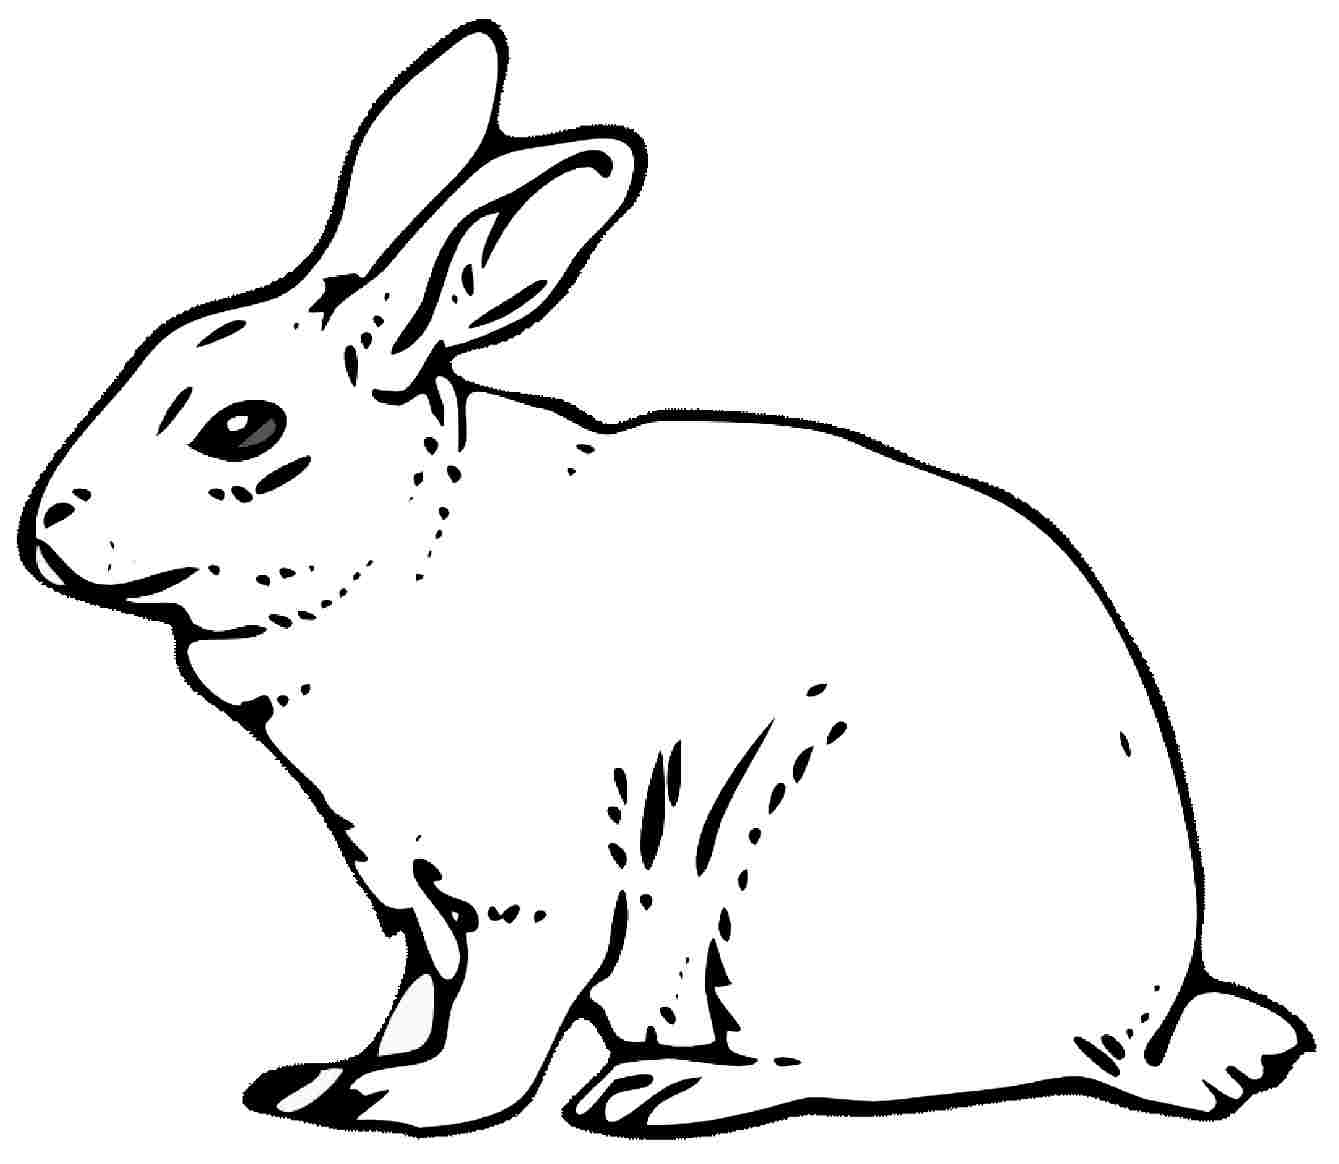 1339x1164 Remarkable Realistic Bunny Coloring Pages Rabb